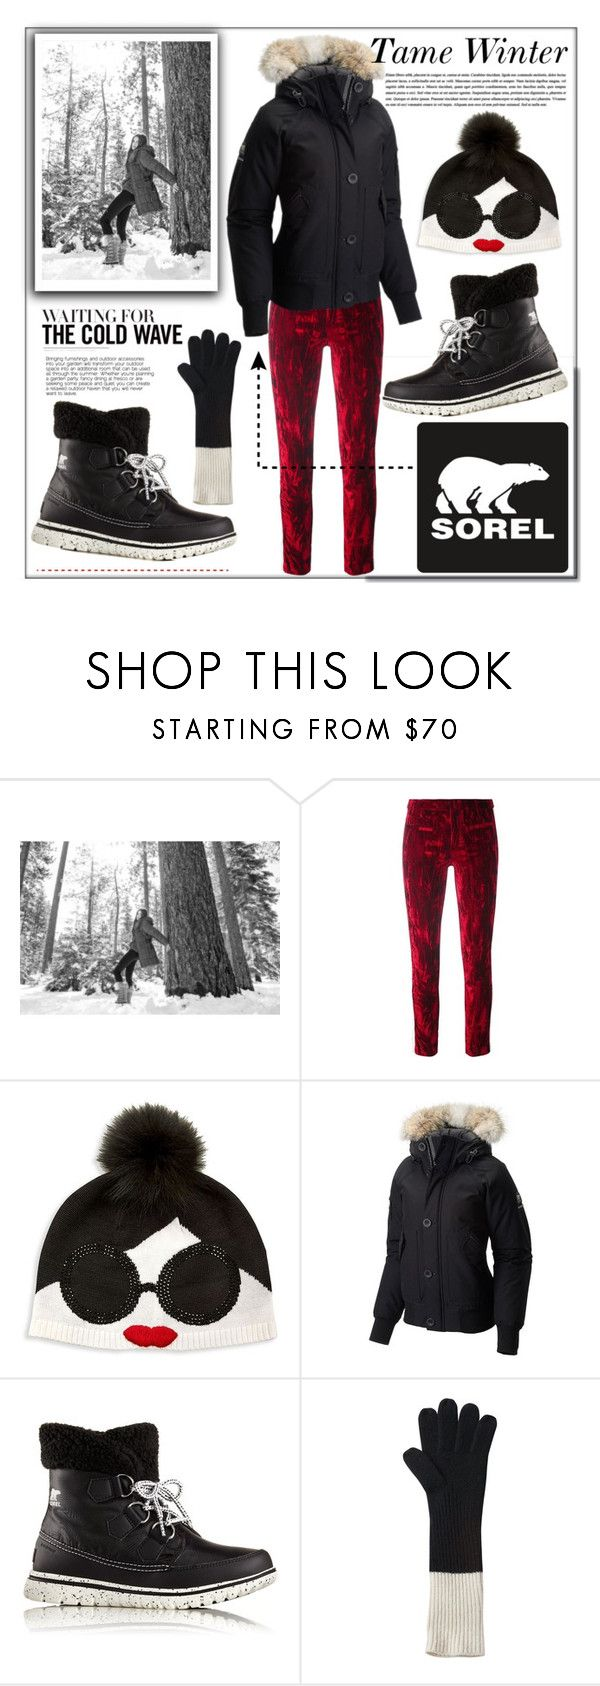 """""""Tame Winter with Sorel: Contest Entry"""" by pat912 ❤ liked on Polyvore featuring SOREL, Haider Ackermann, Alice + Olivia, polyvoreeditorial and sorelstyle"""